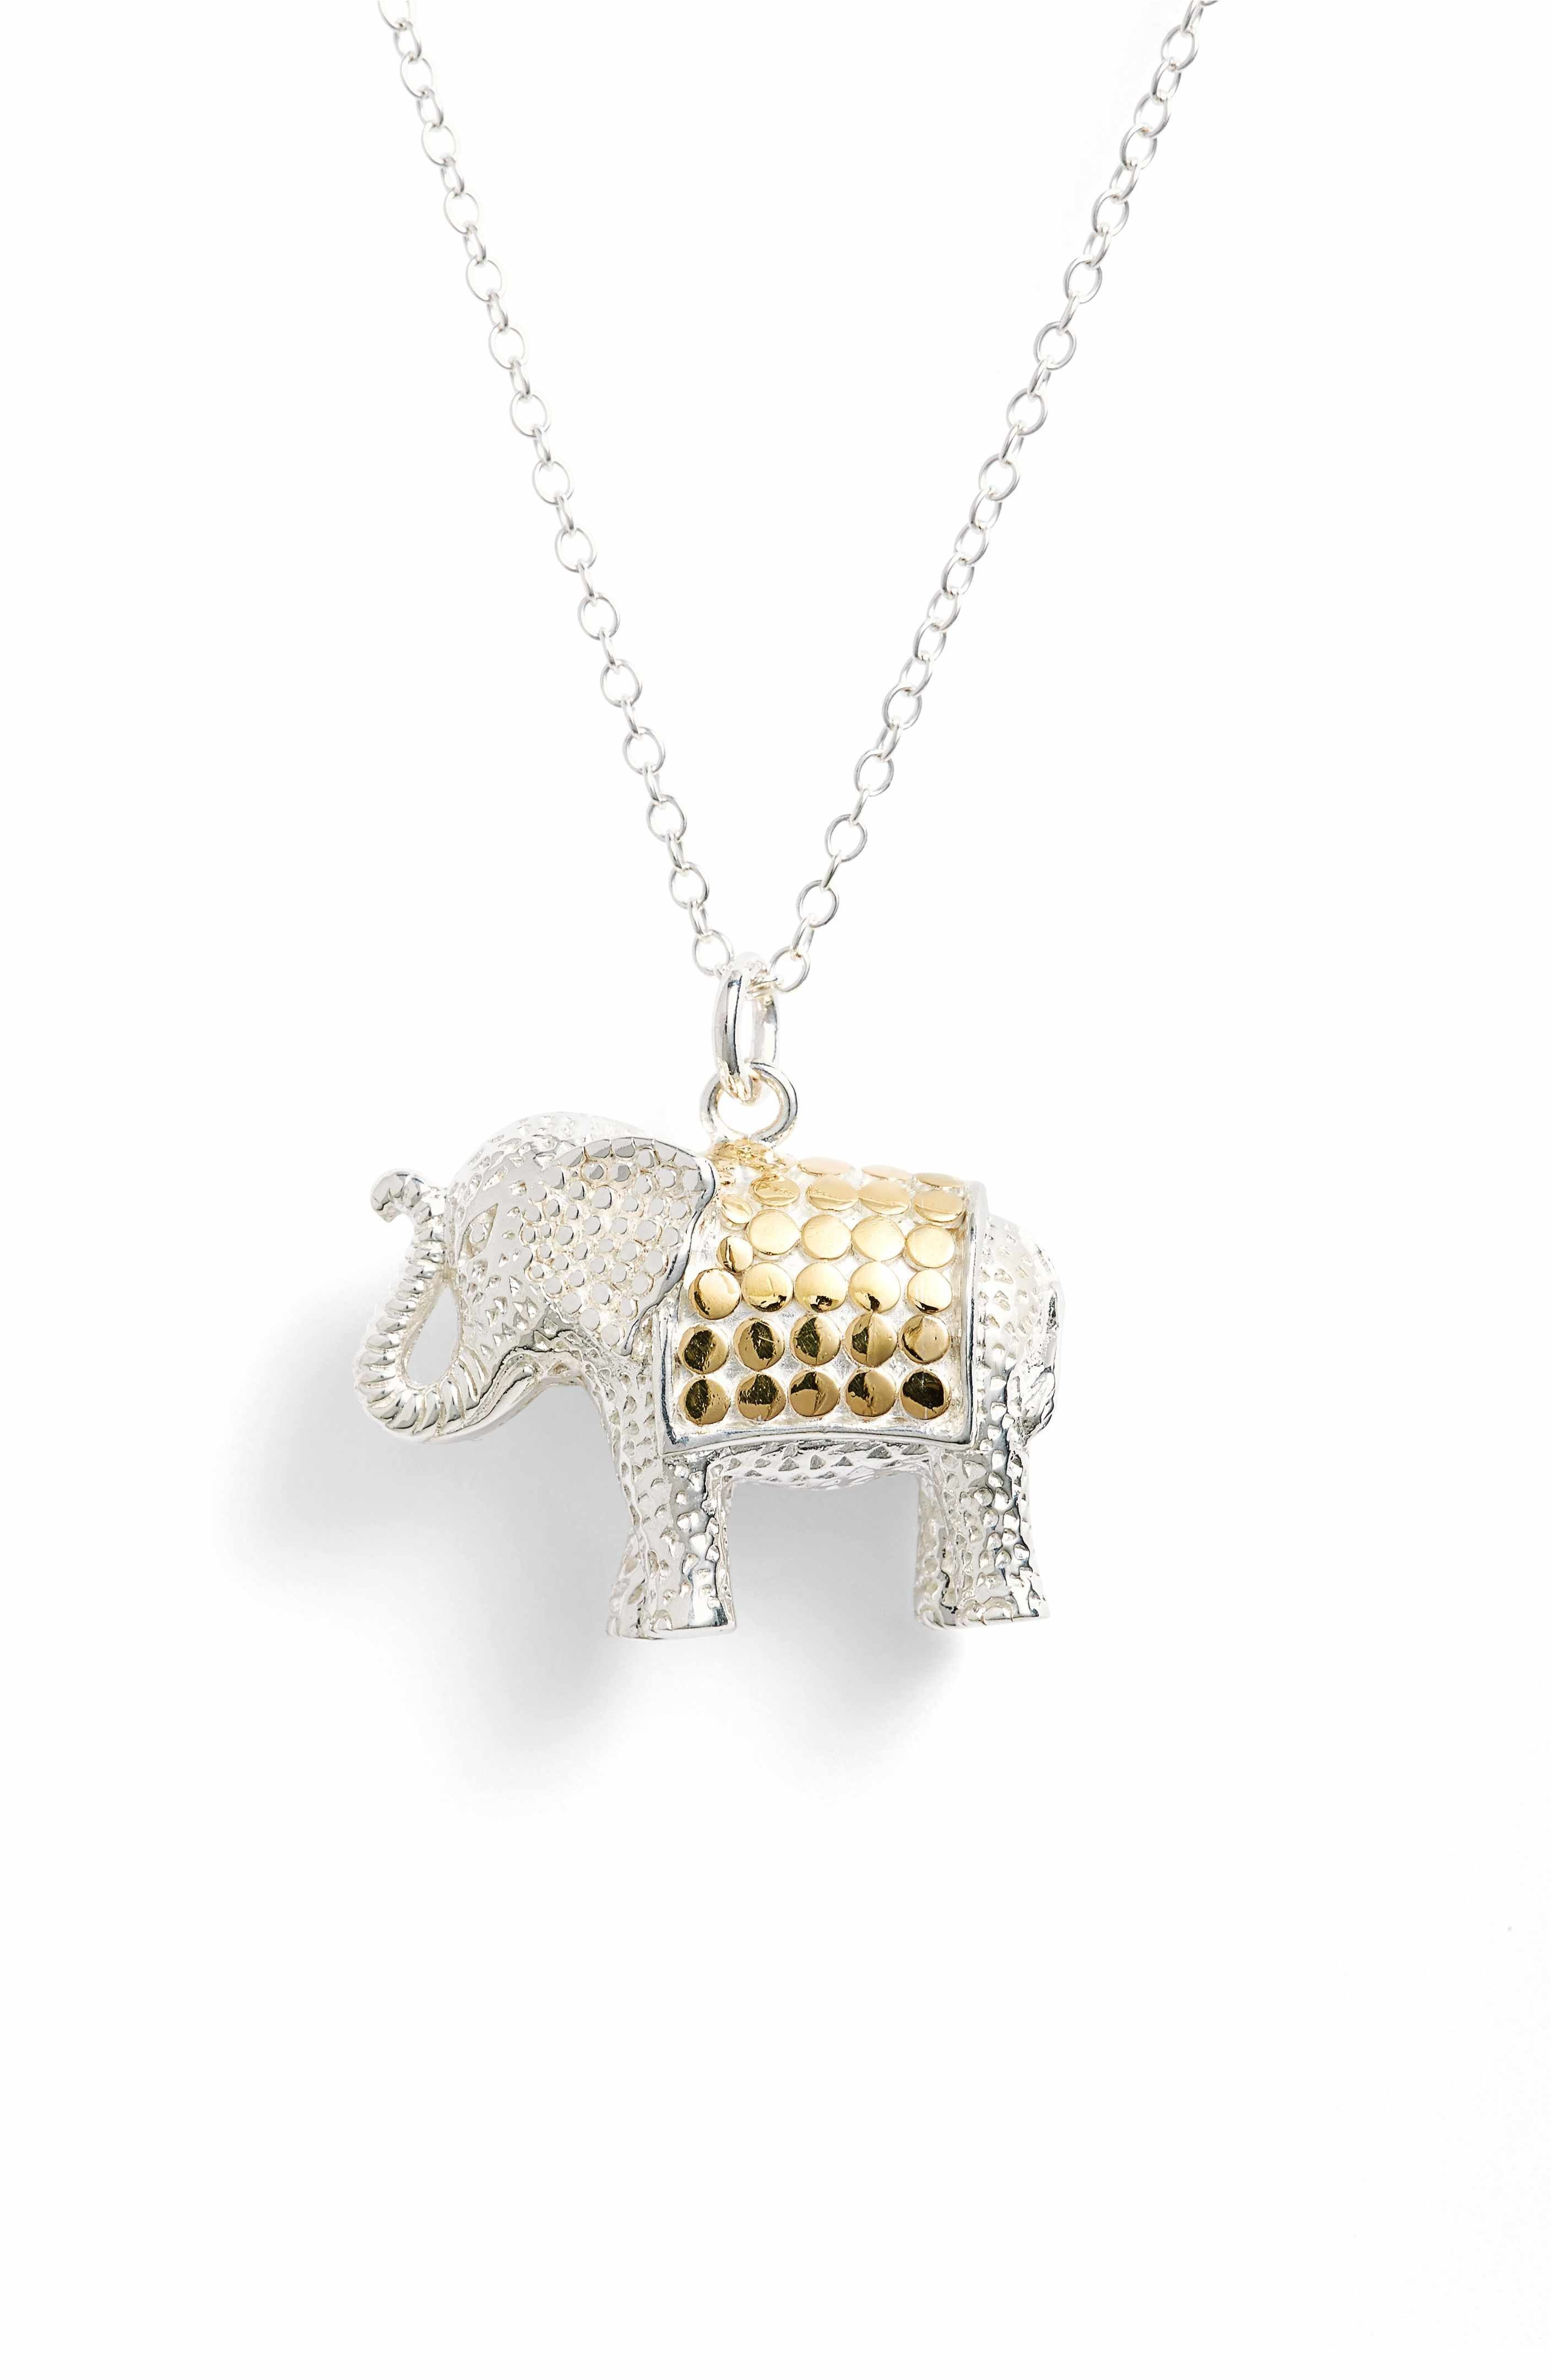 3aa82cc99 Main Image - Anna Beck Jewelry That Makes a Difference Elephant Pendant  Necklace